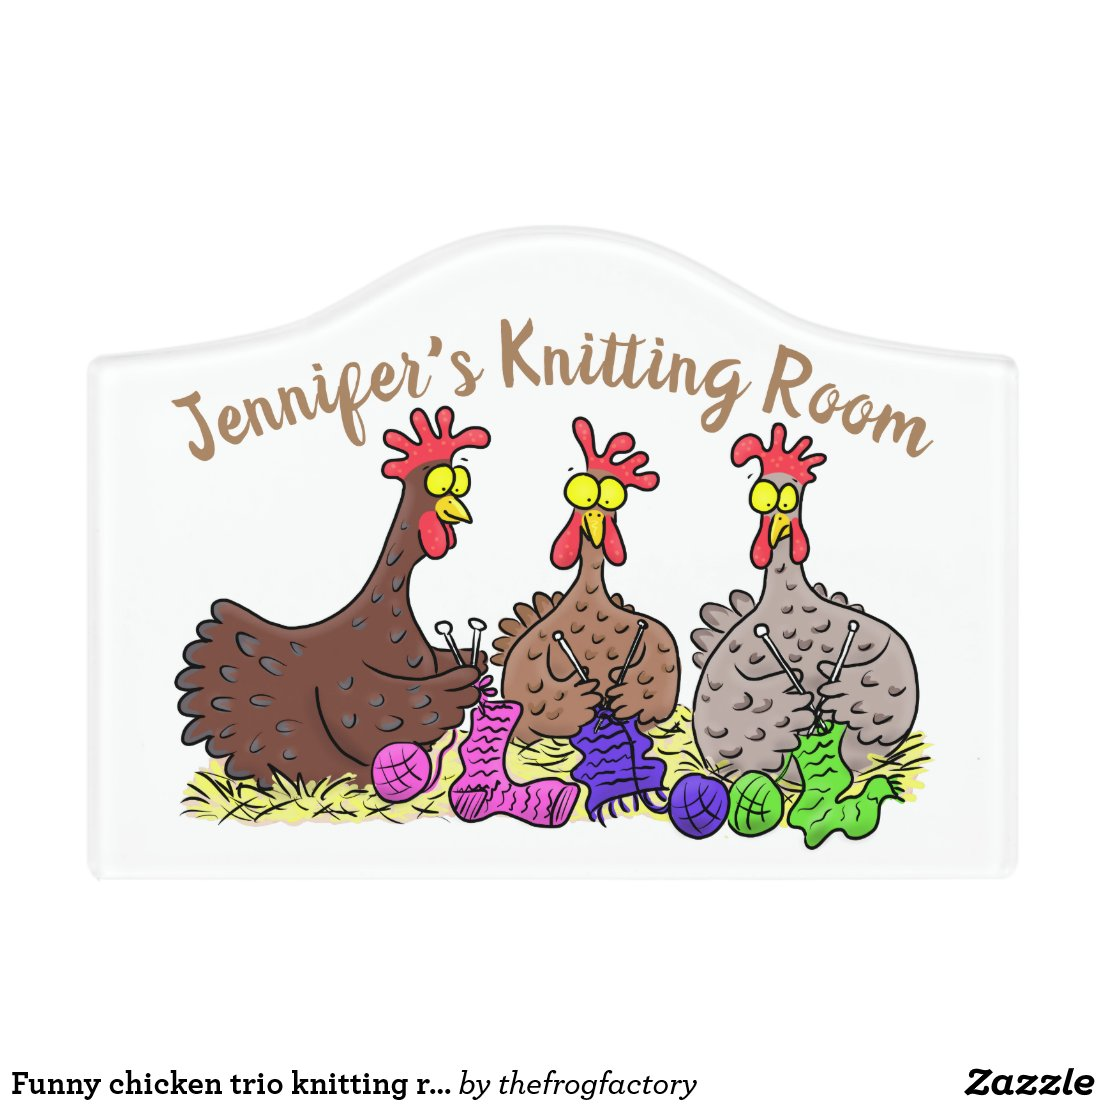 Funny chicken trio knitting room cartoon door sign